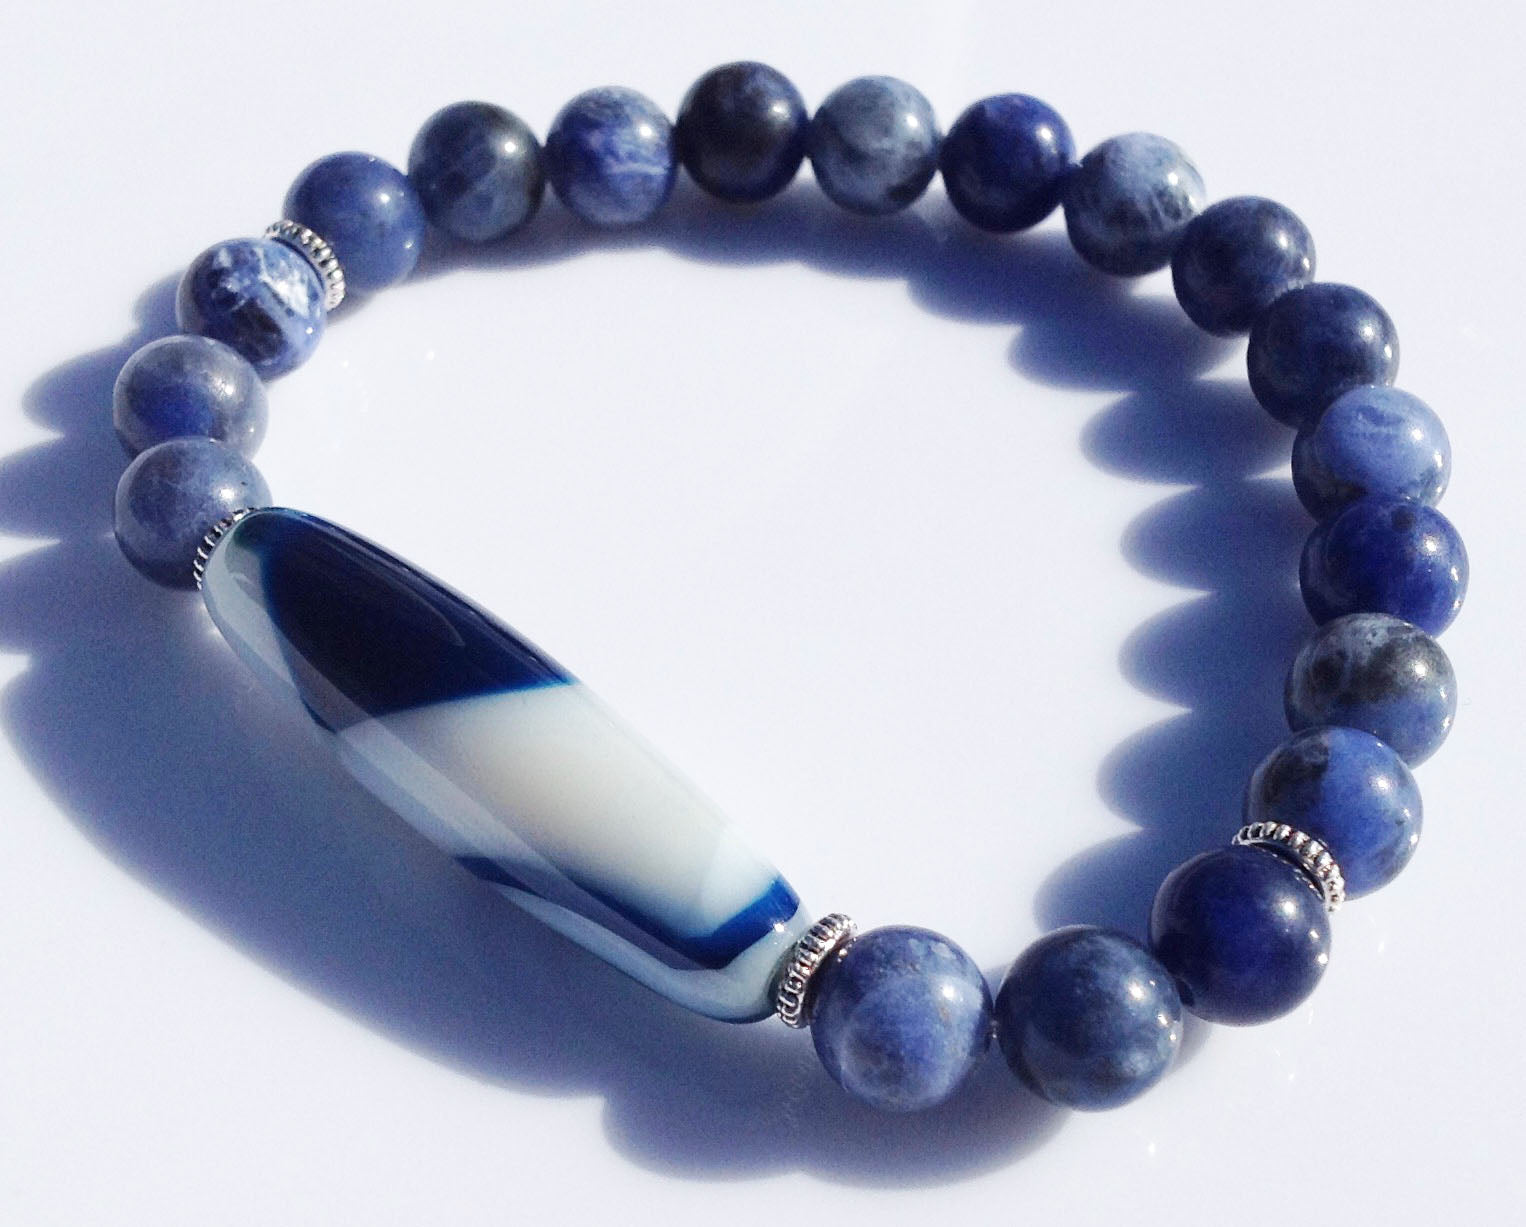 Ancient Blue and White Dzi Bead Collection Sodalite Stone Yoga Meditation Wrist Mala Bracelet Third Eye Chakra Focus Healing Energy Reiki